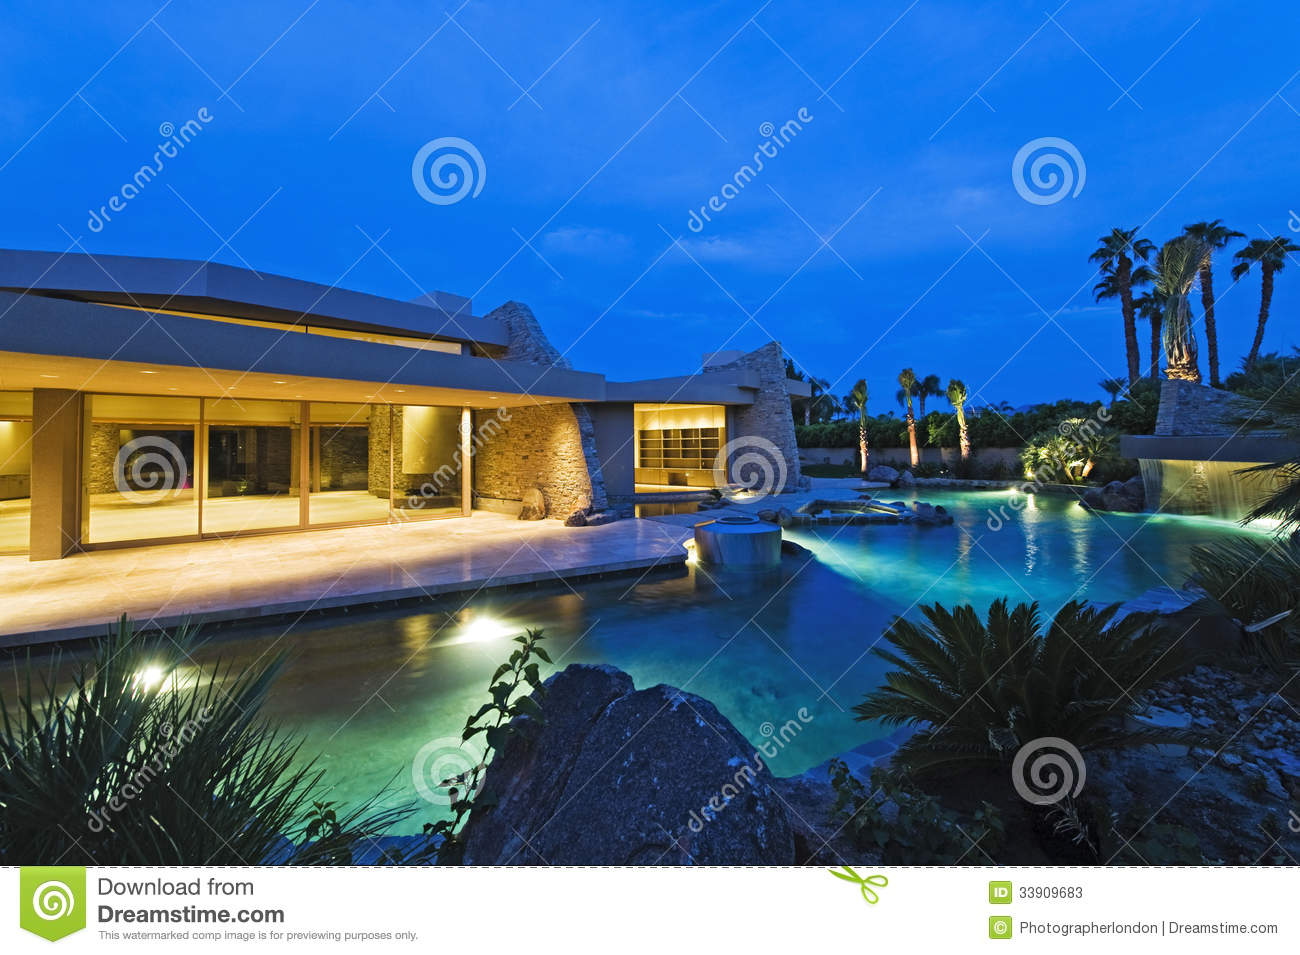 House With Pool In Backyard At Dusk Stock Image Image